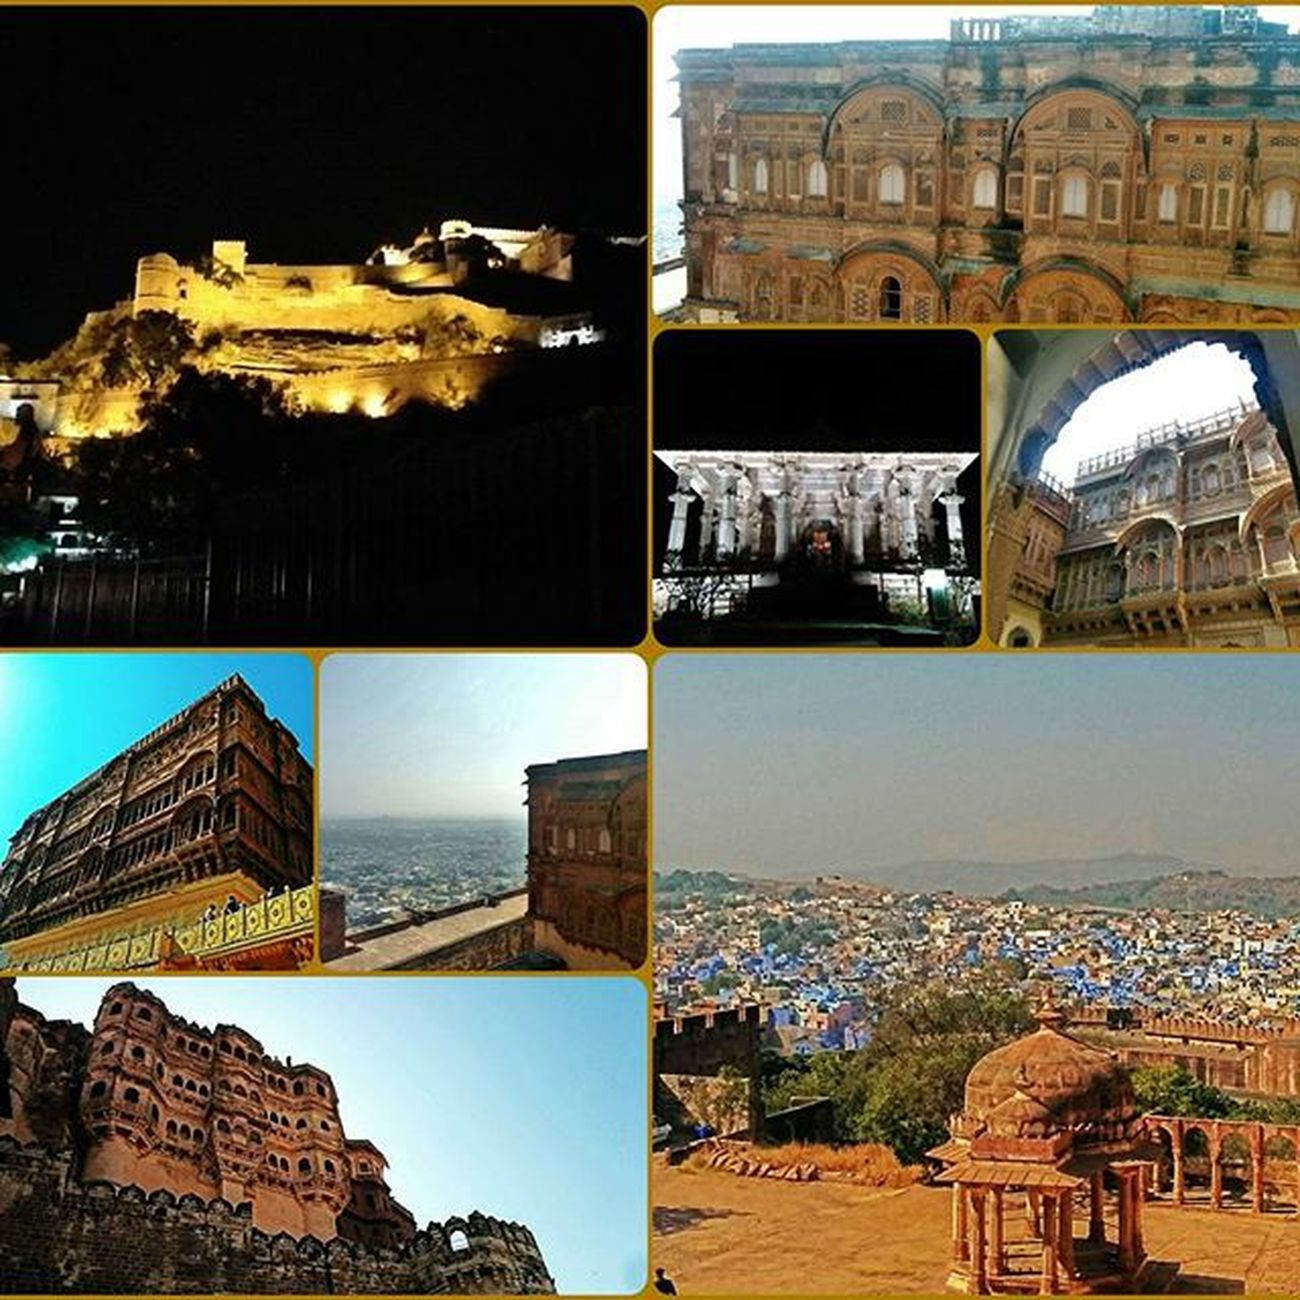 Forts, palaces and the light and sound show! Mehrangarh Kumbhalgarh Jodhpur Aravallis Rajasthan Theincrediblestateofindia